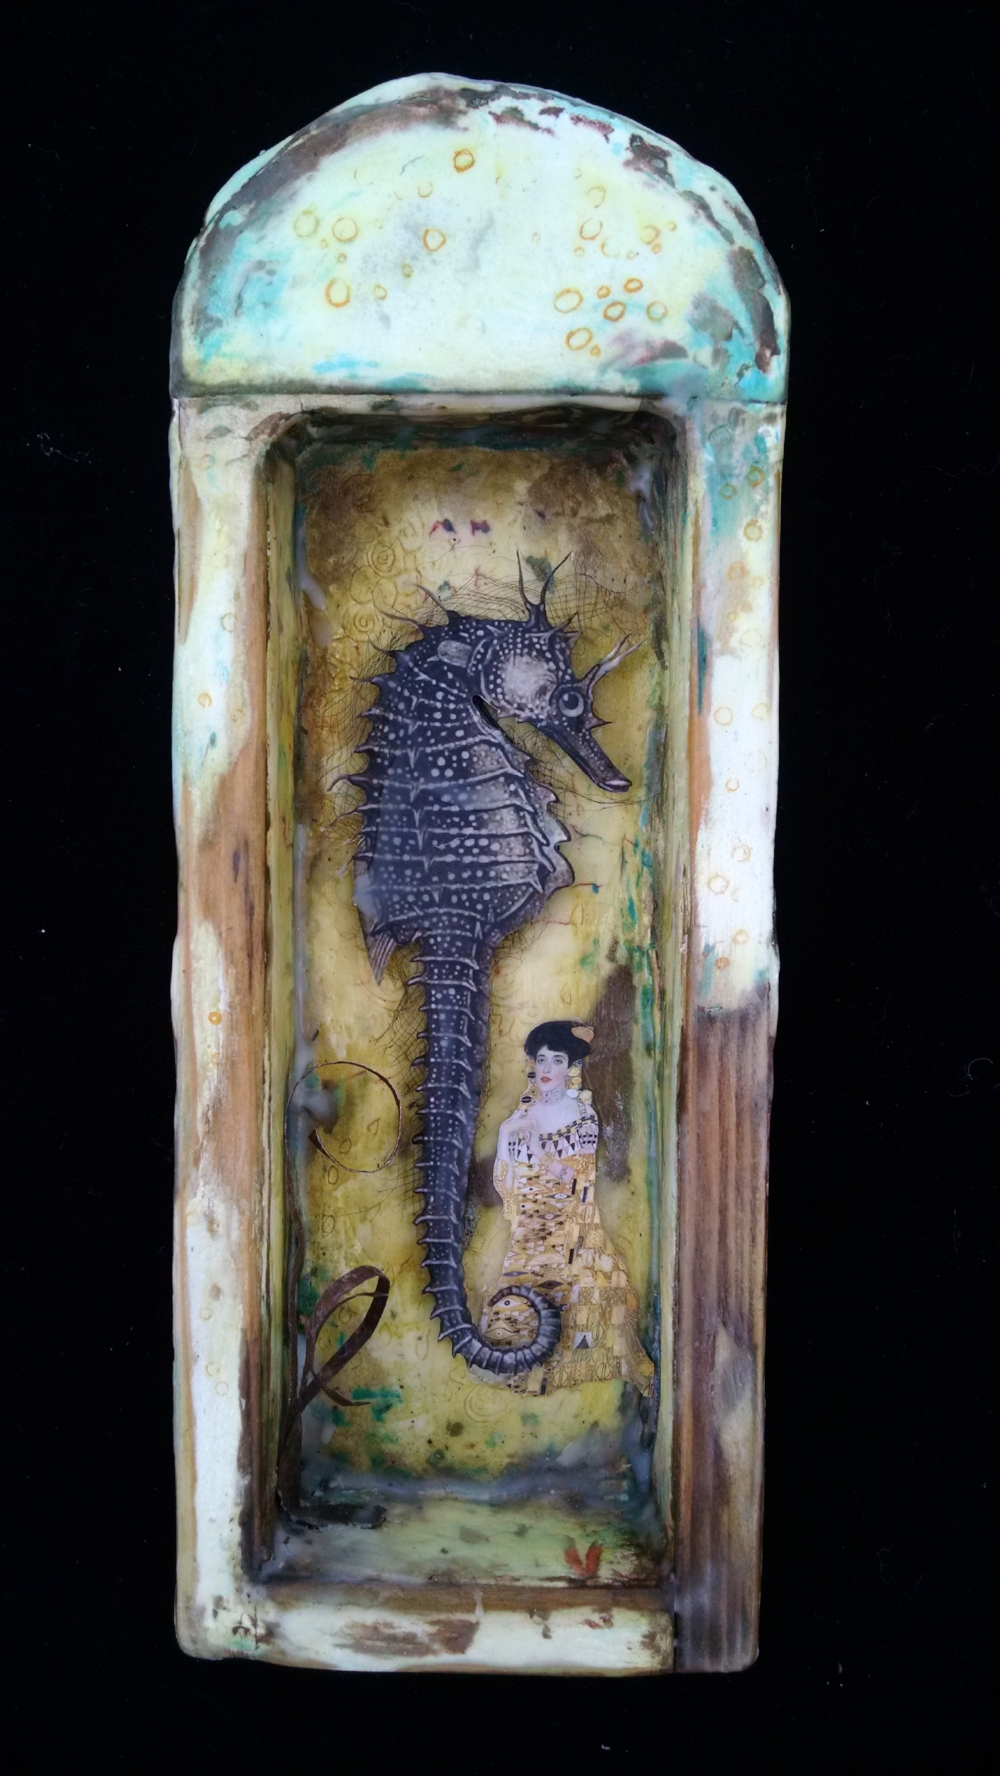 Assemblage with Plaster and Wax